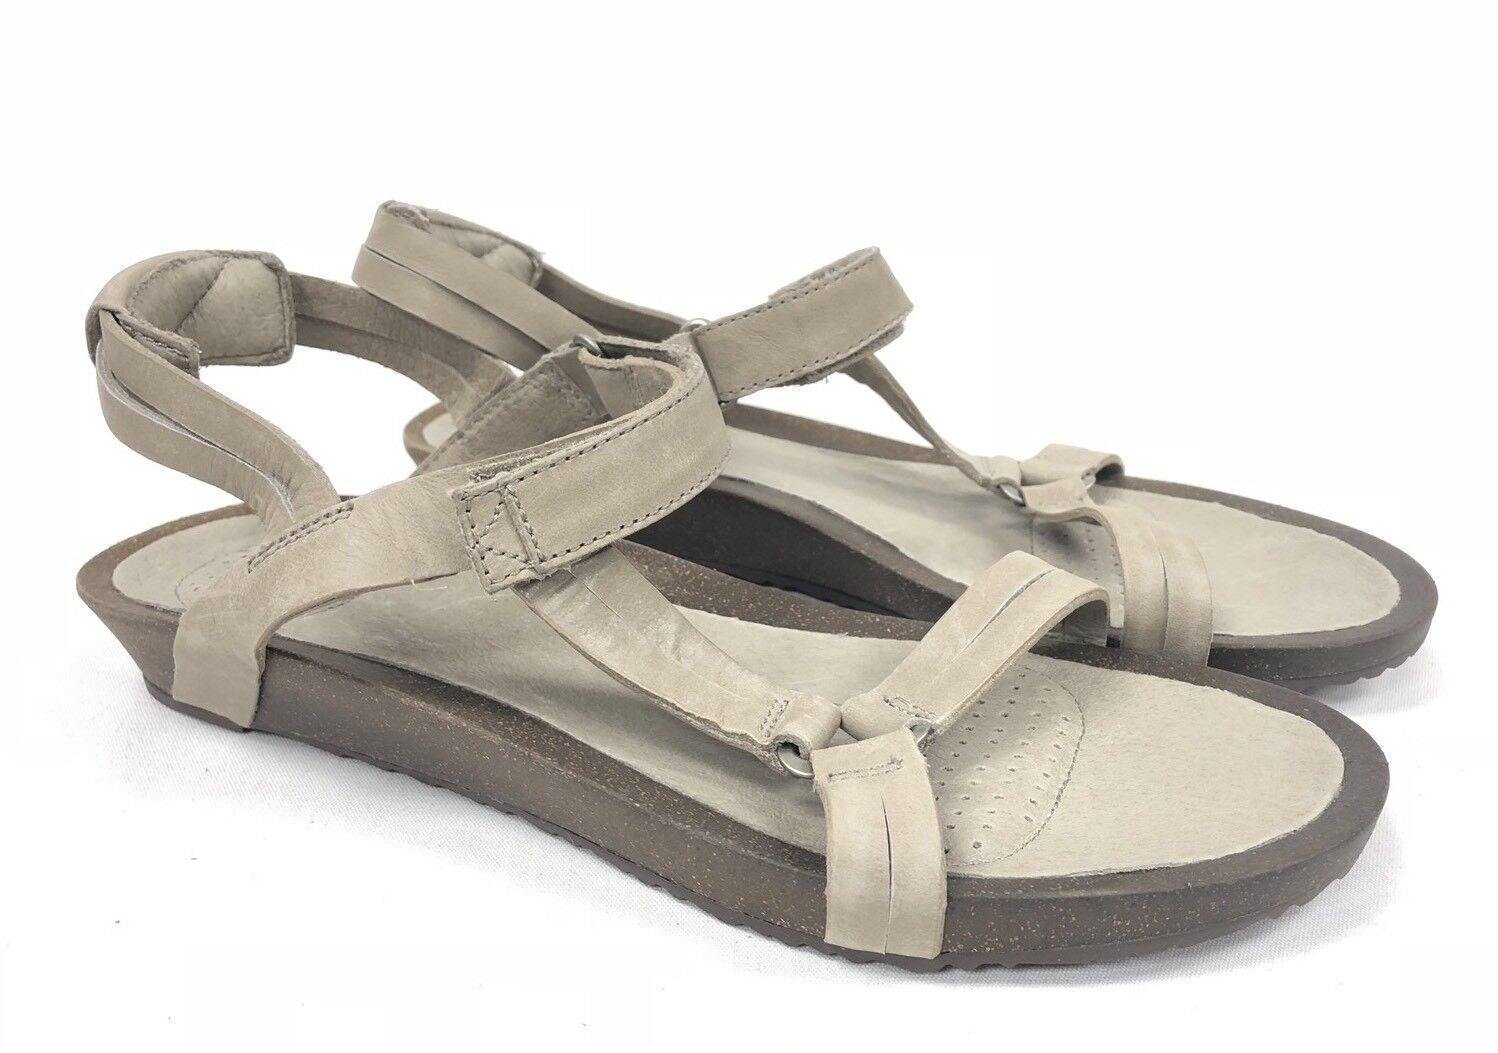 TEVA WOMENS SANDALS YSIDRO UNIVERSAL Taupe Leather 1015121 STRAPPY